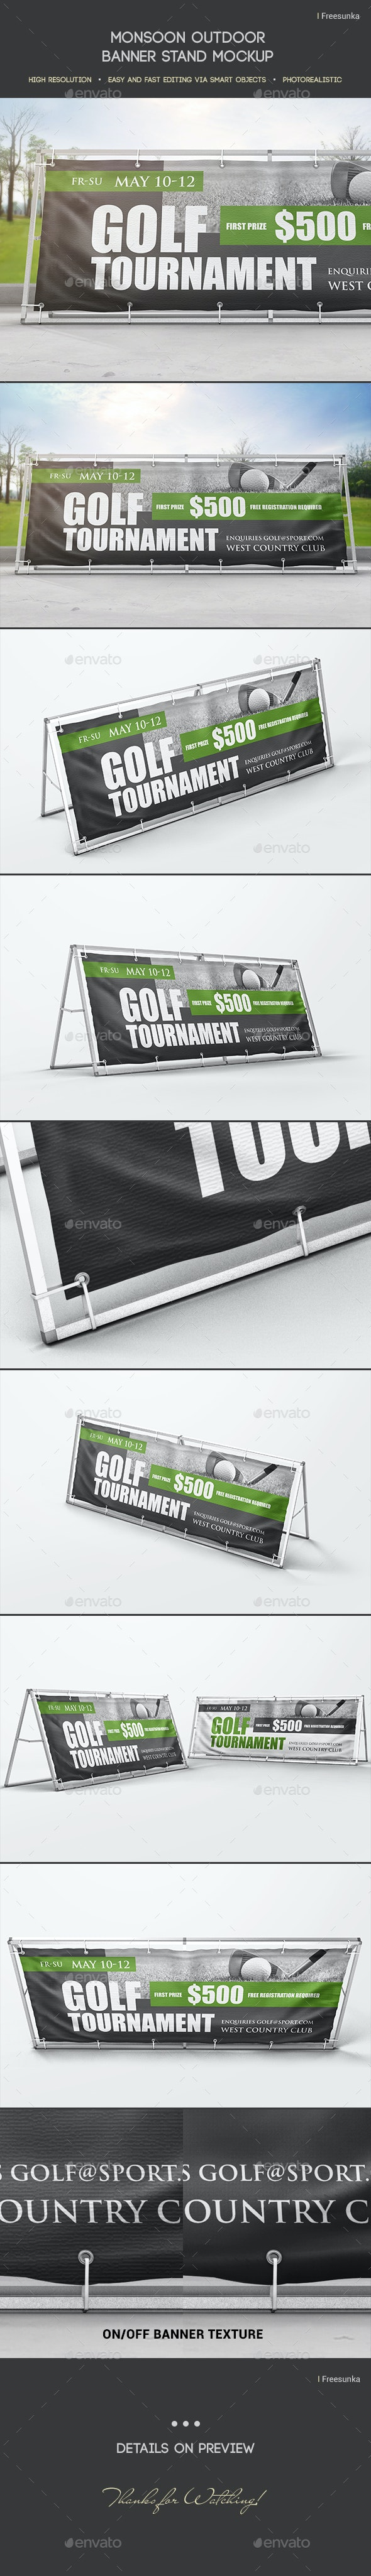 Monsoon Outdoor Banner Stand Mockup - Miscellaneous Print